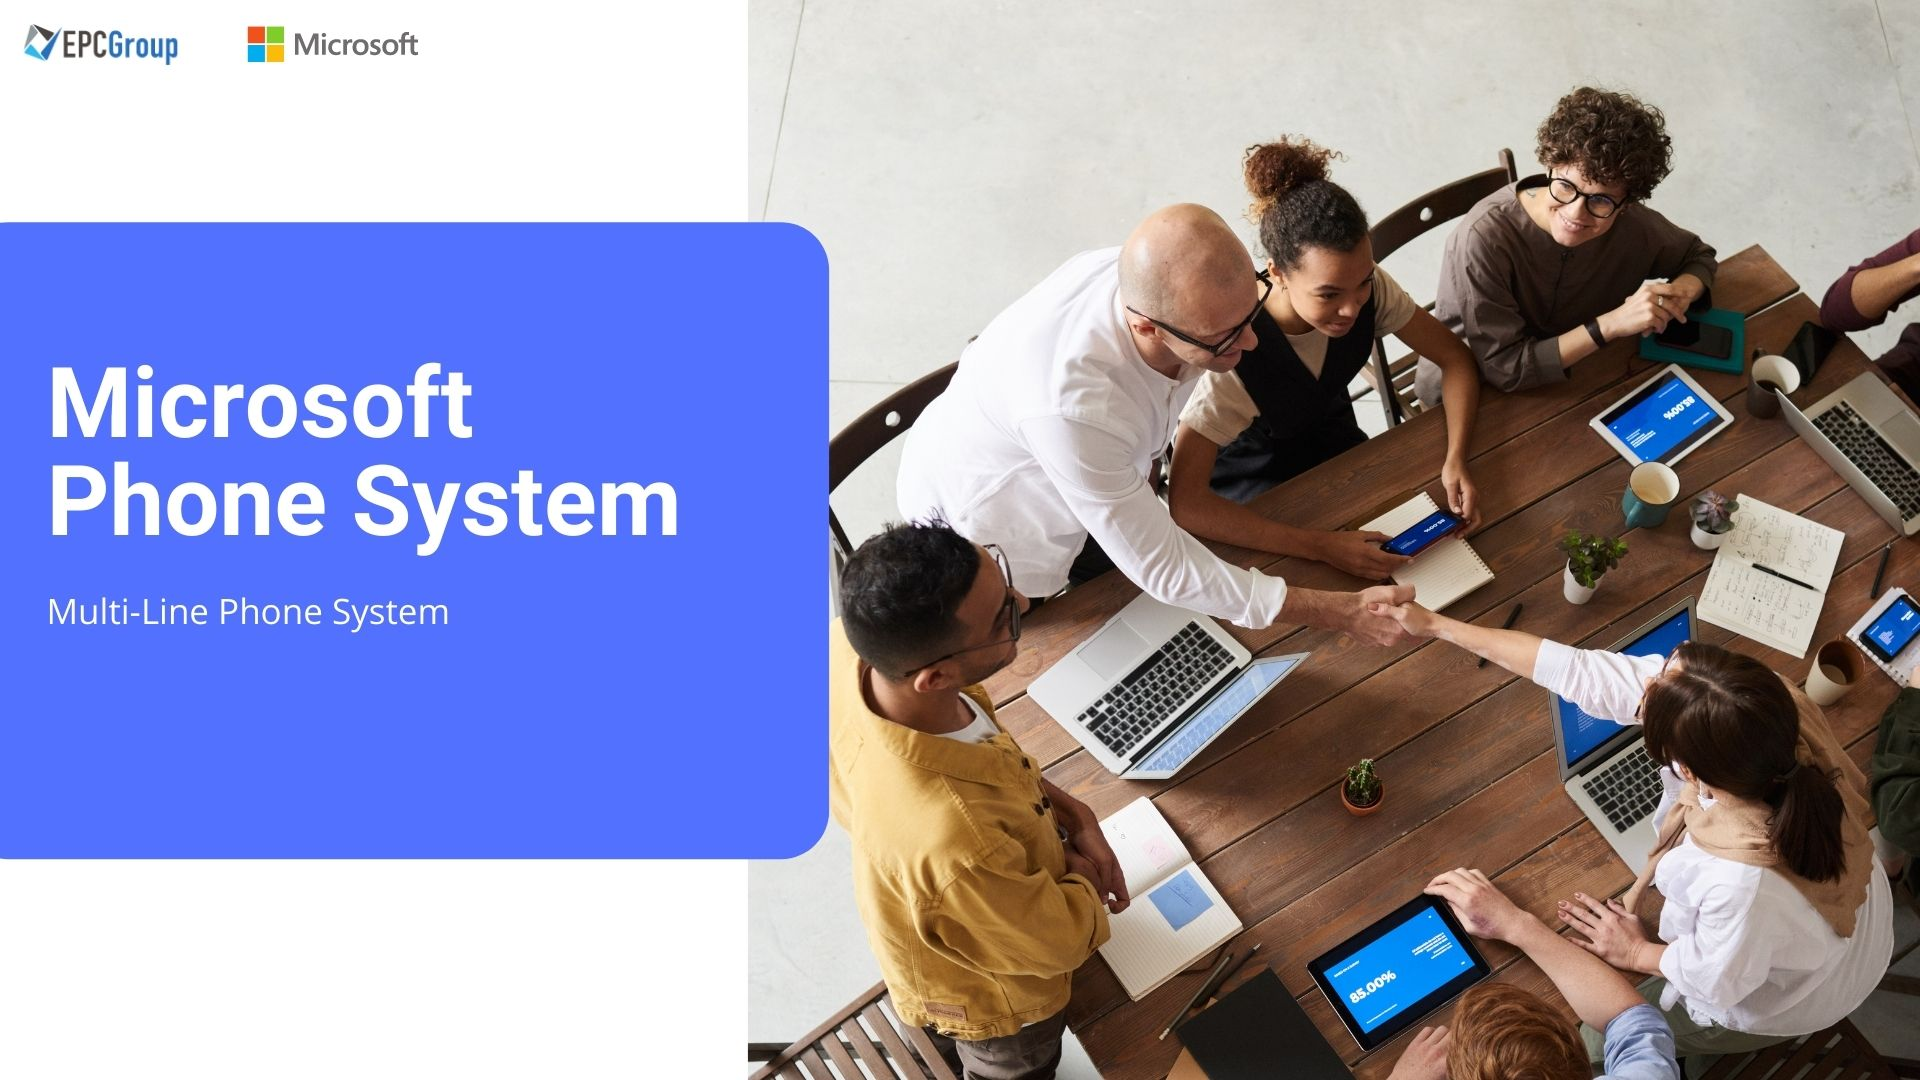 Multi-Line Phone System for Small Business — Microsoft Phone System - thumb image